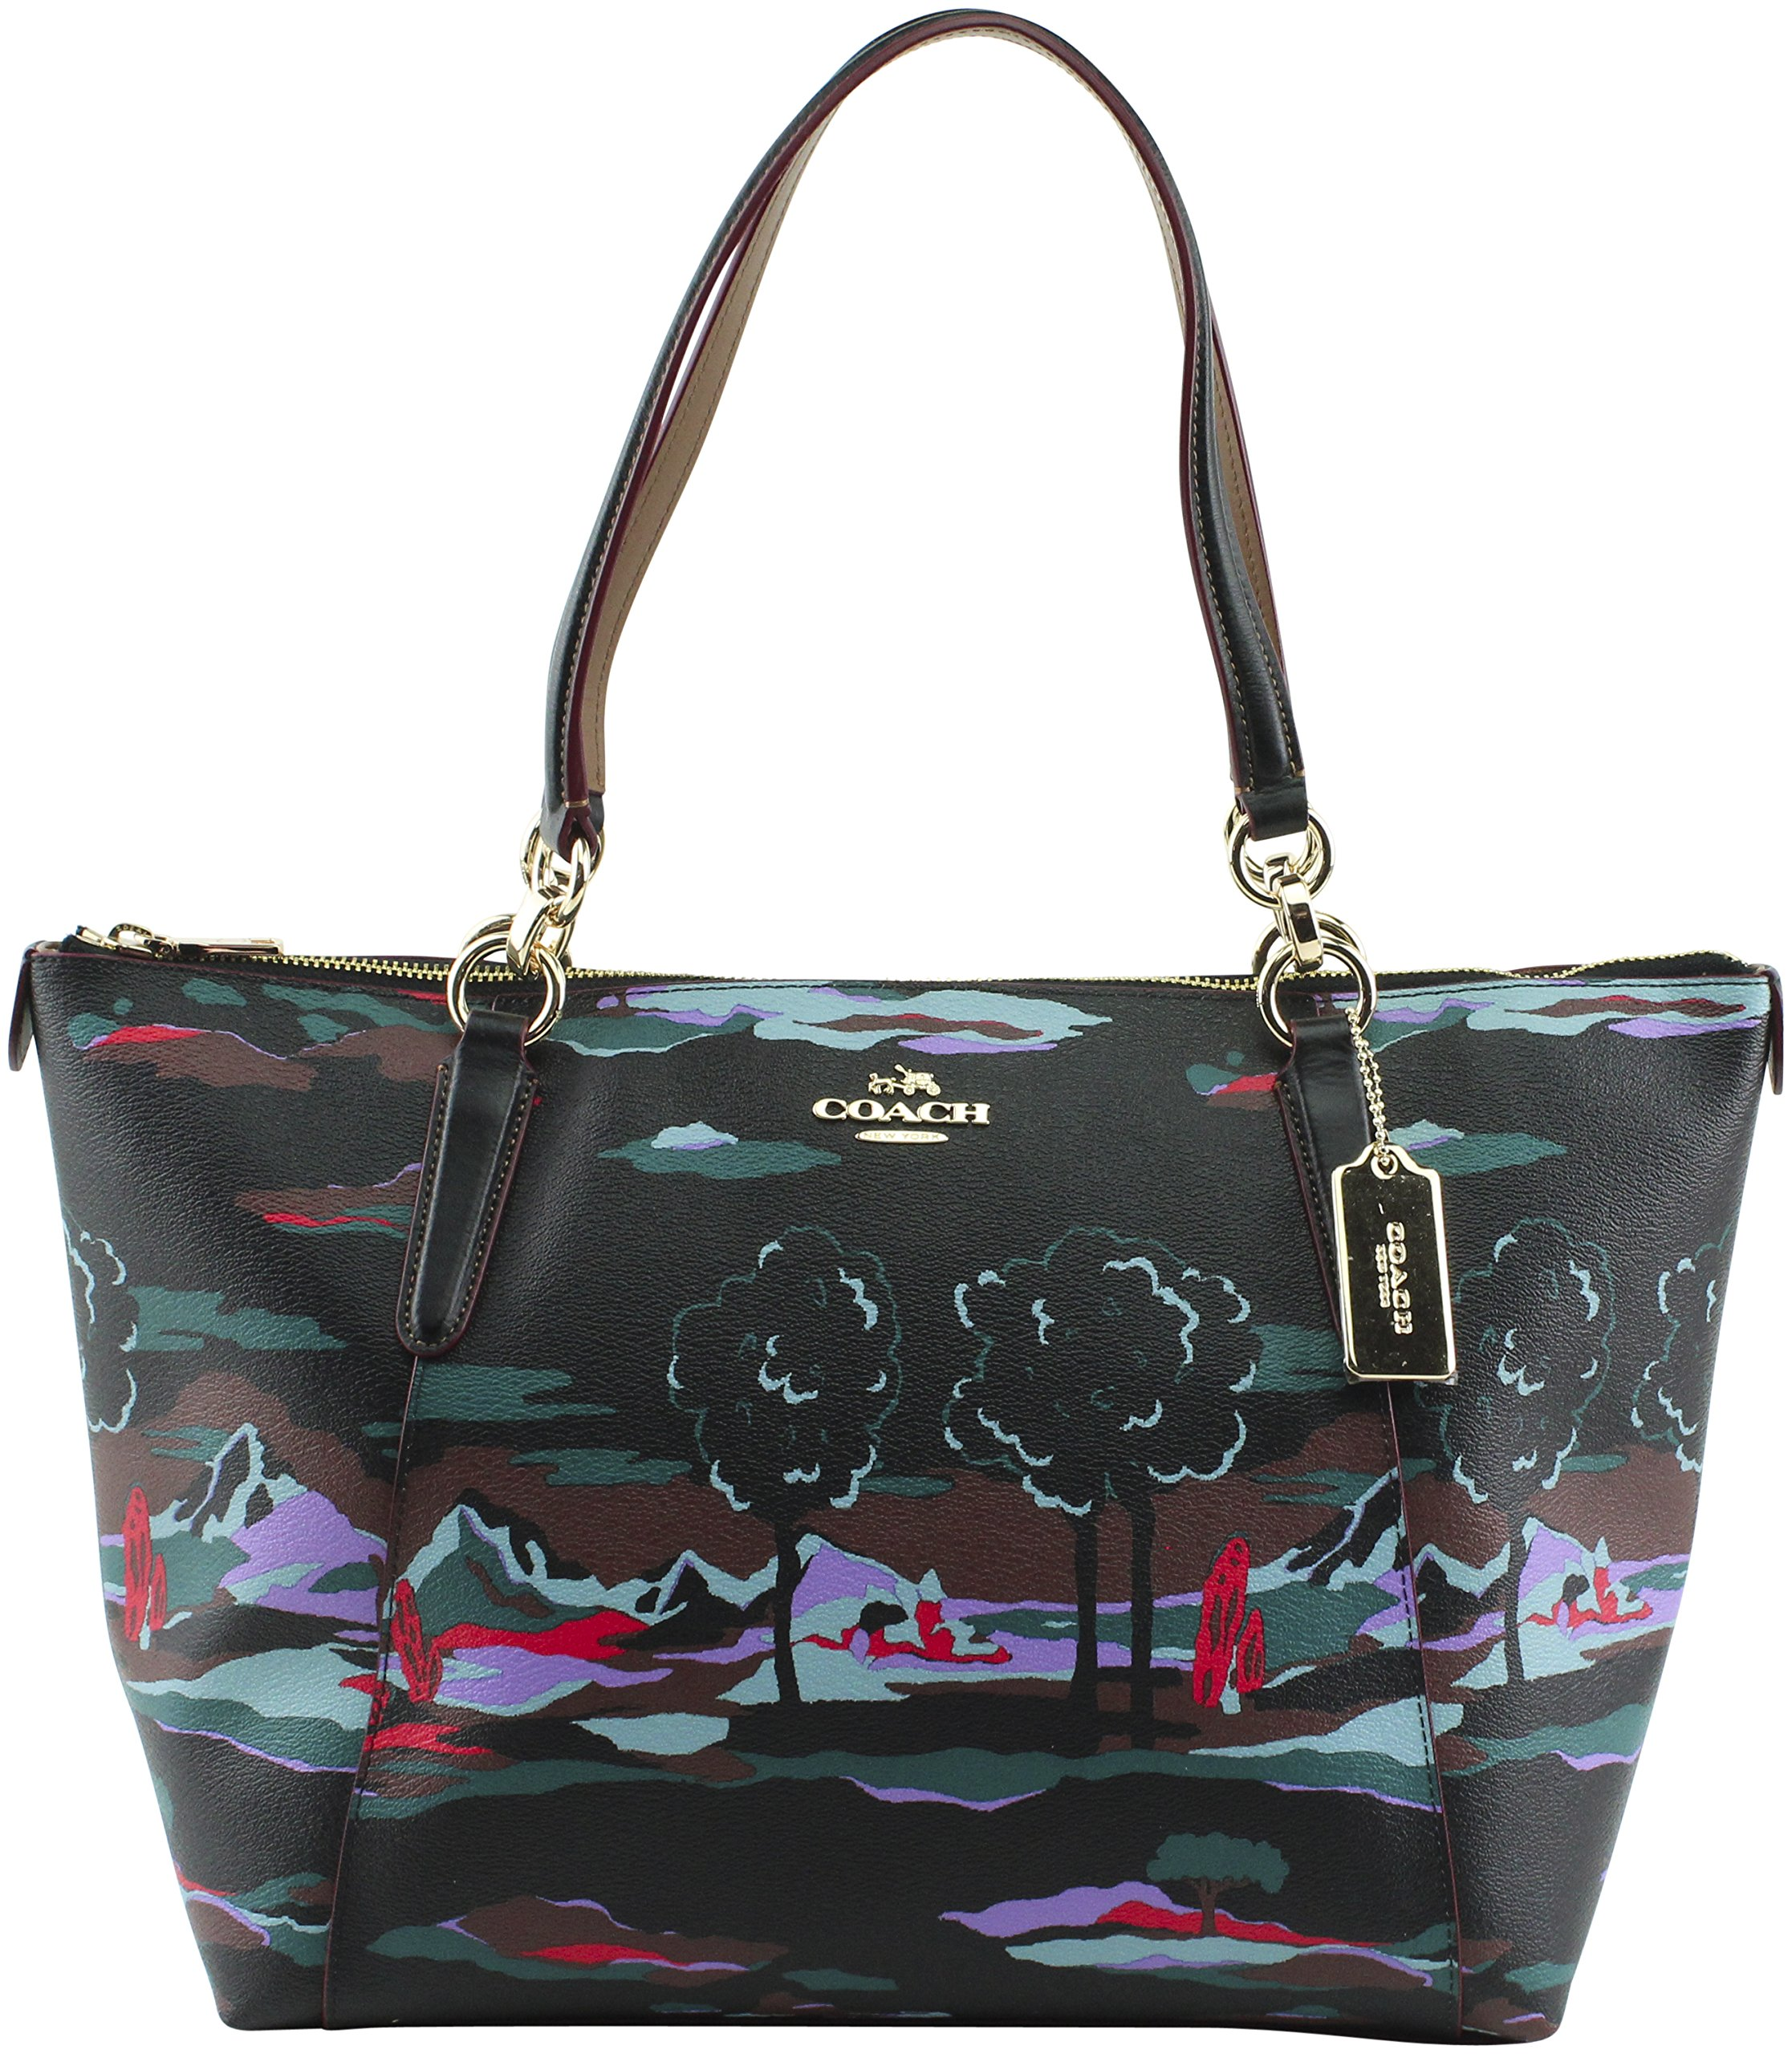 Coach Women's Landscape Print Coated Canvas Ava Tote, Style F11901, IM Black Multi by Coach